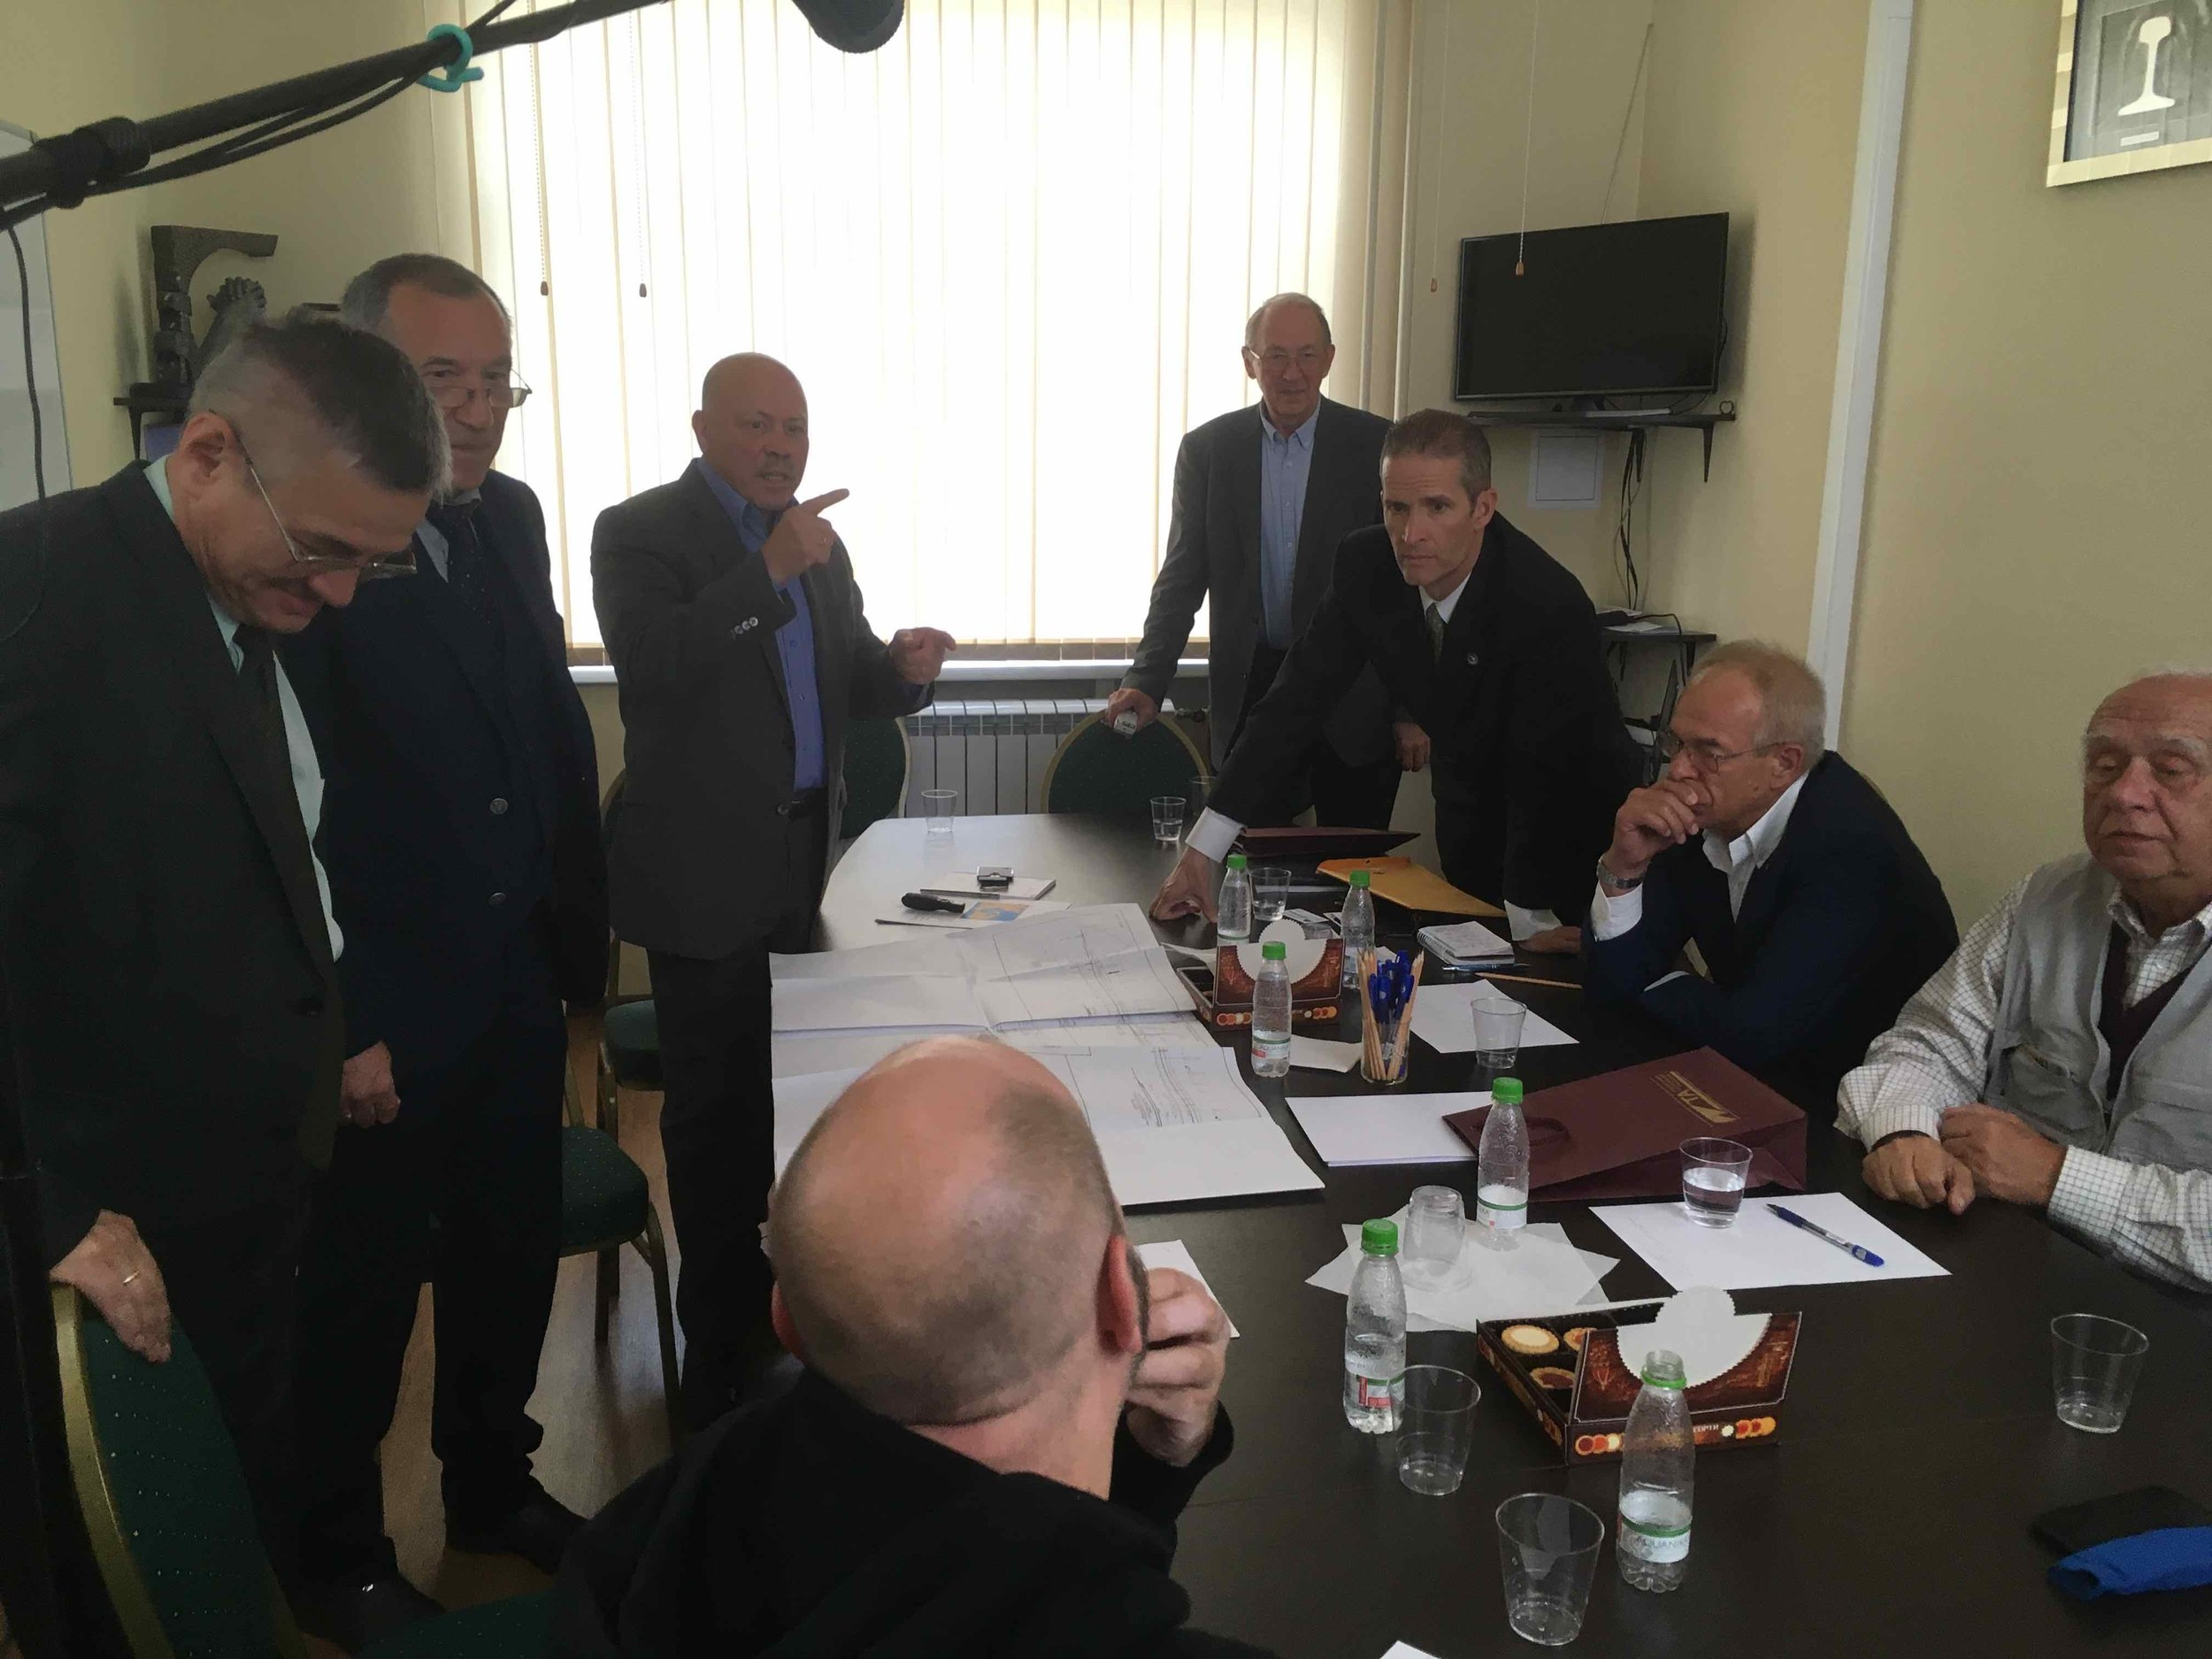 The Intercontinental Railway team listen to a presentation by the Russian Tunnelling Association about its analysis of and design ideas for the InterContinental Railway.